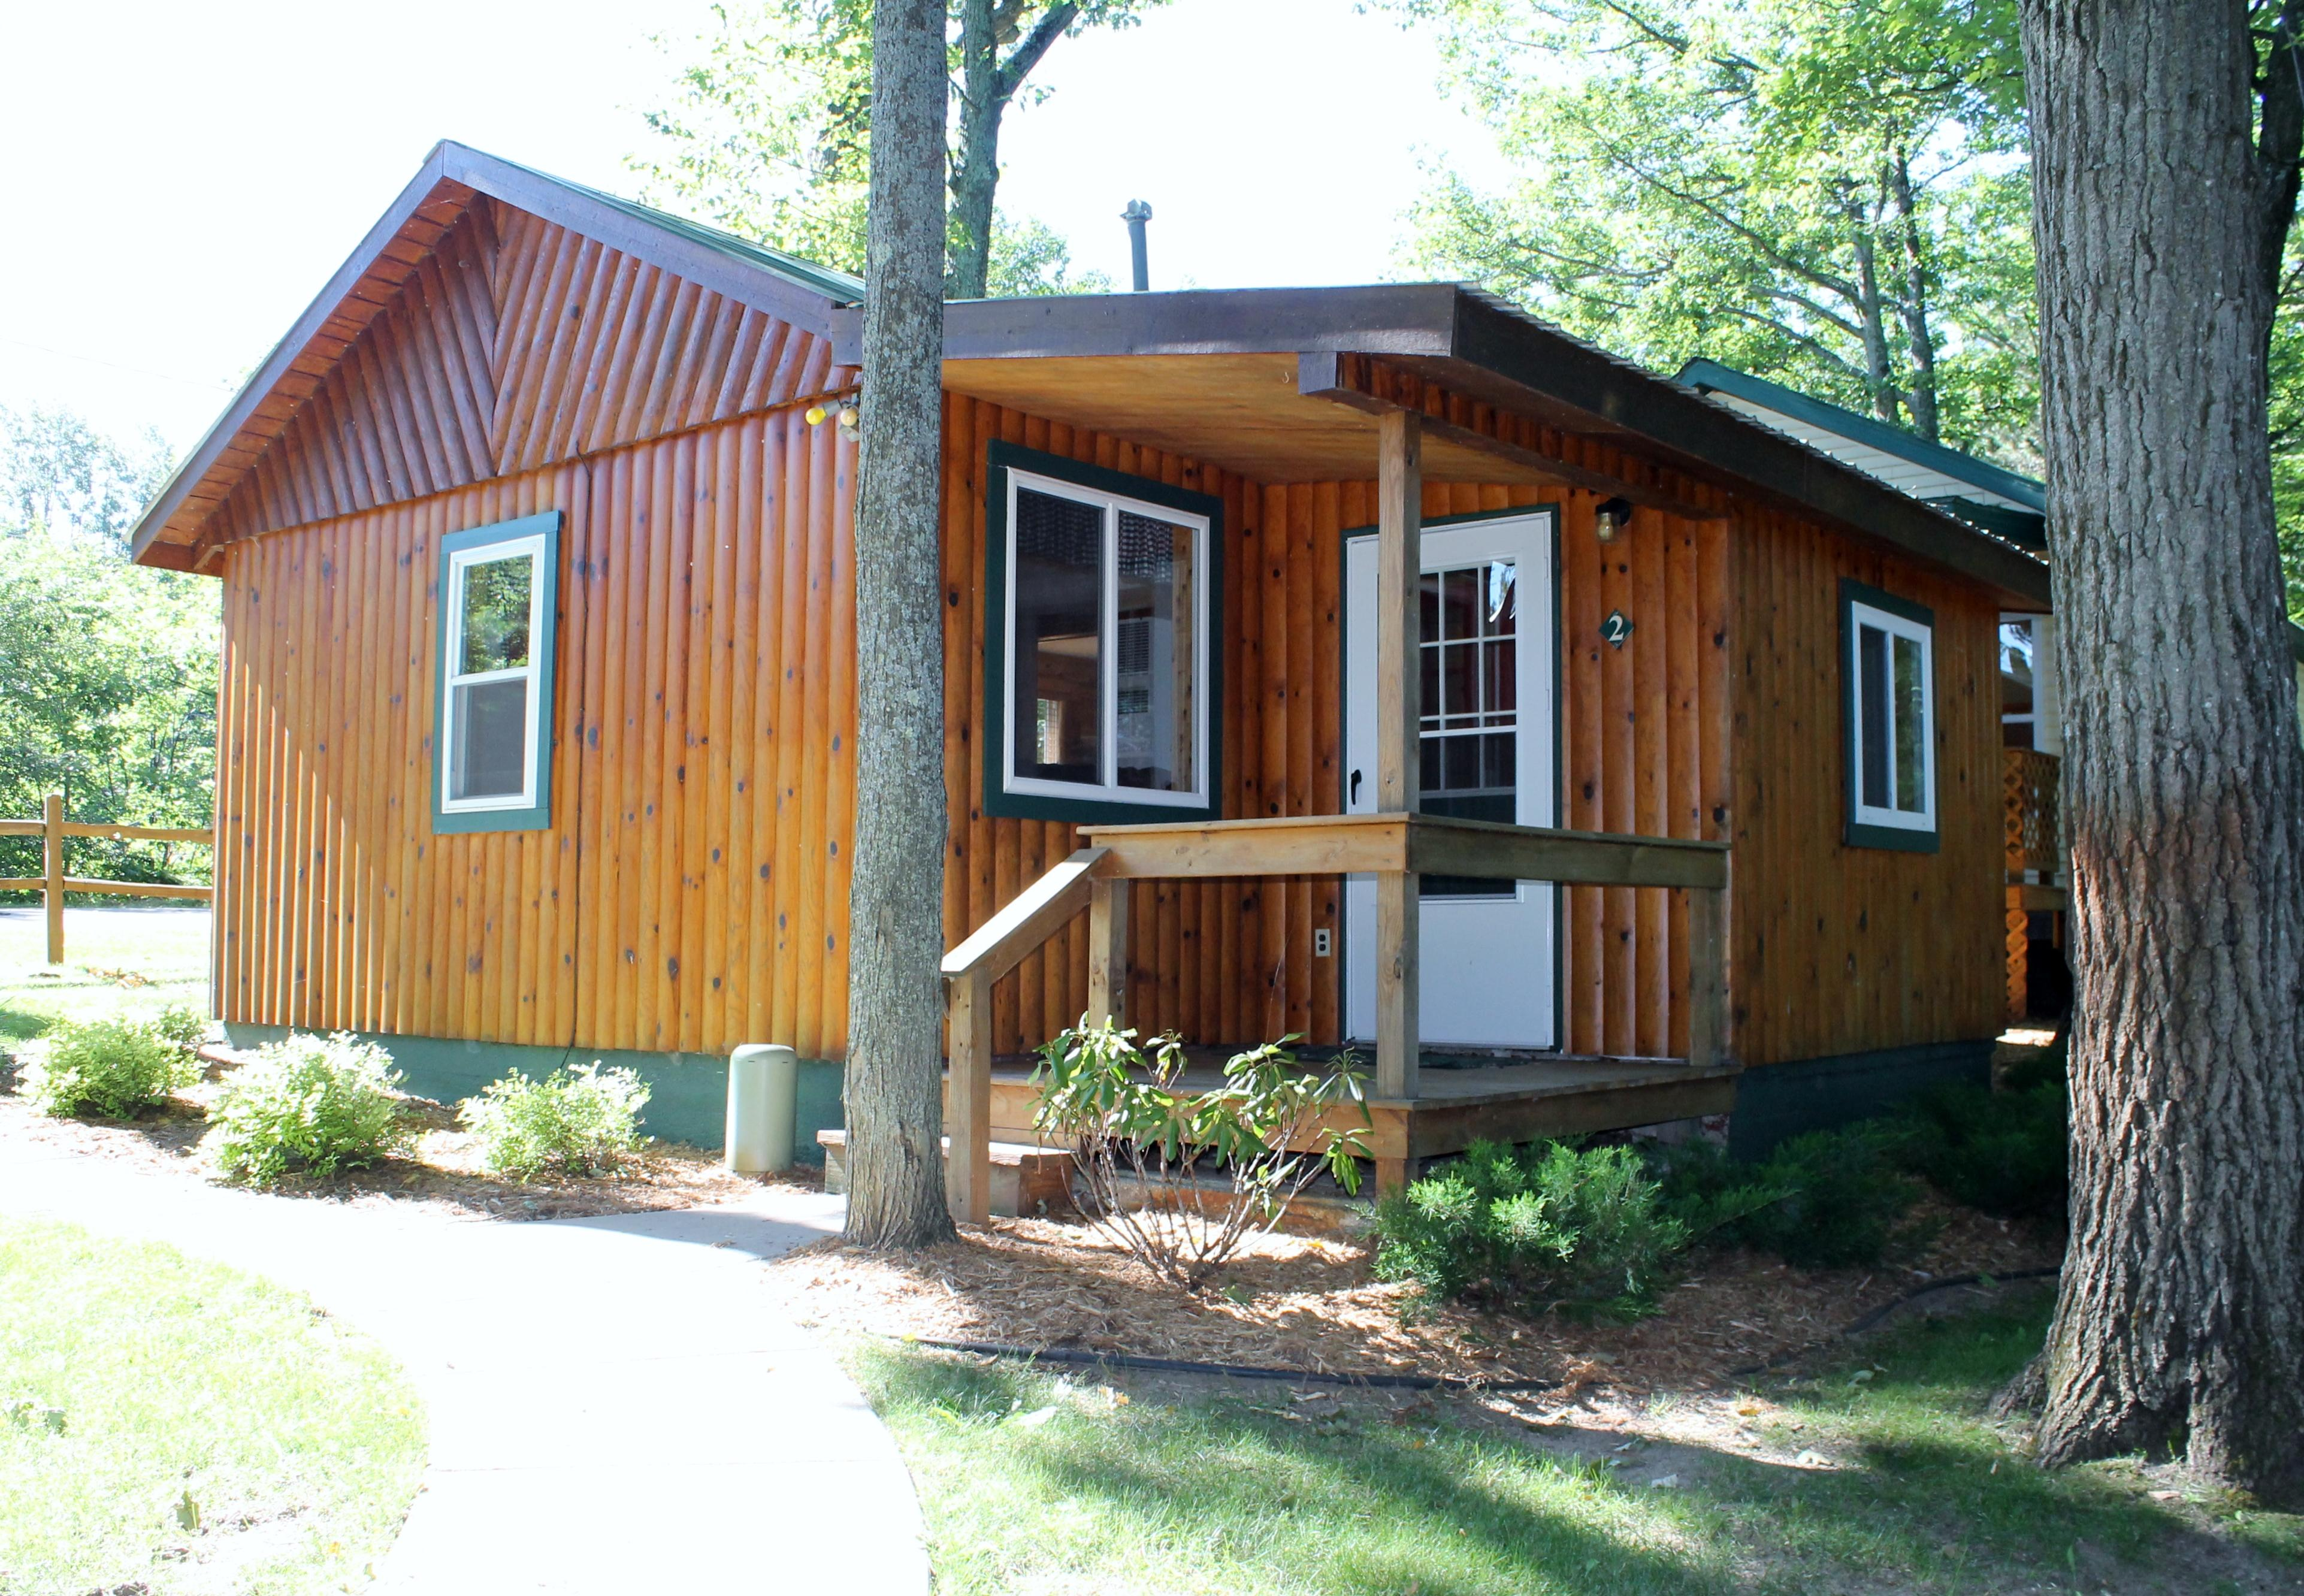 rent com friendly state pa pet finger cabins cabin mn lakes pagosa springs rentals lake talentneeds rapids park for in